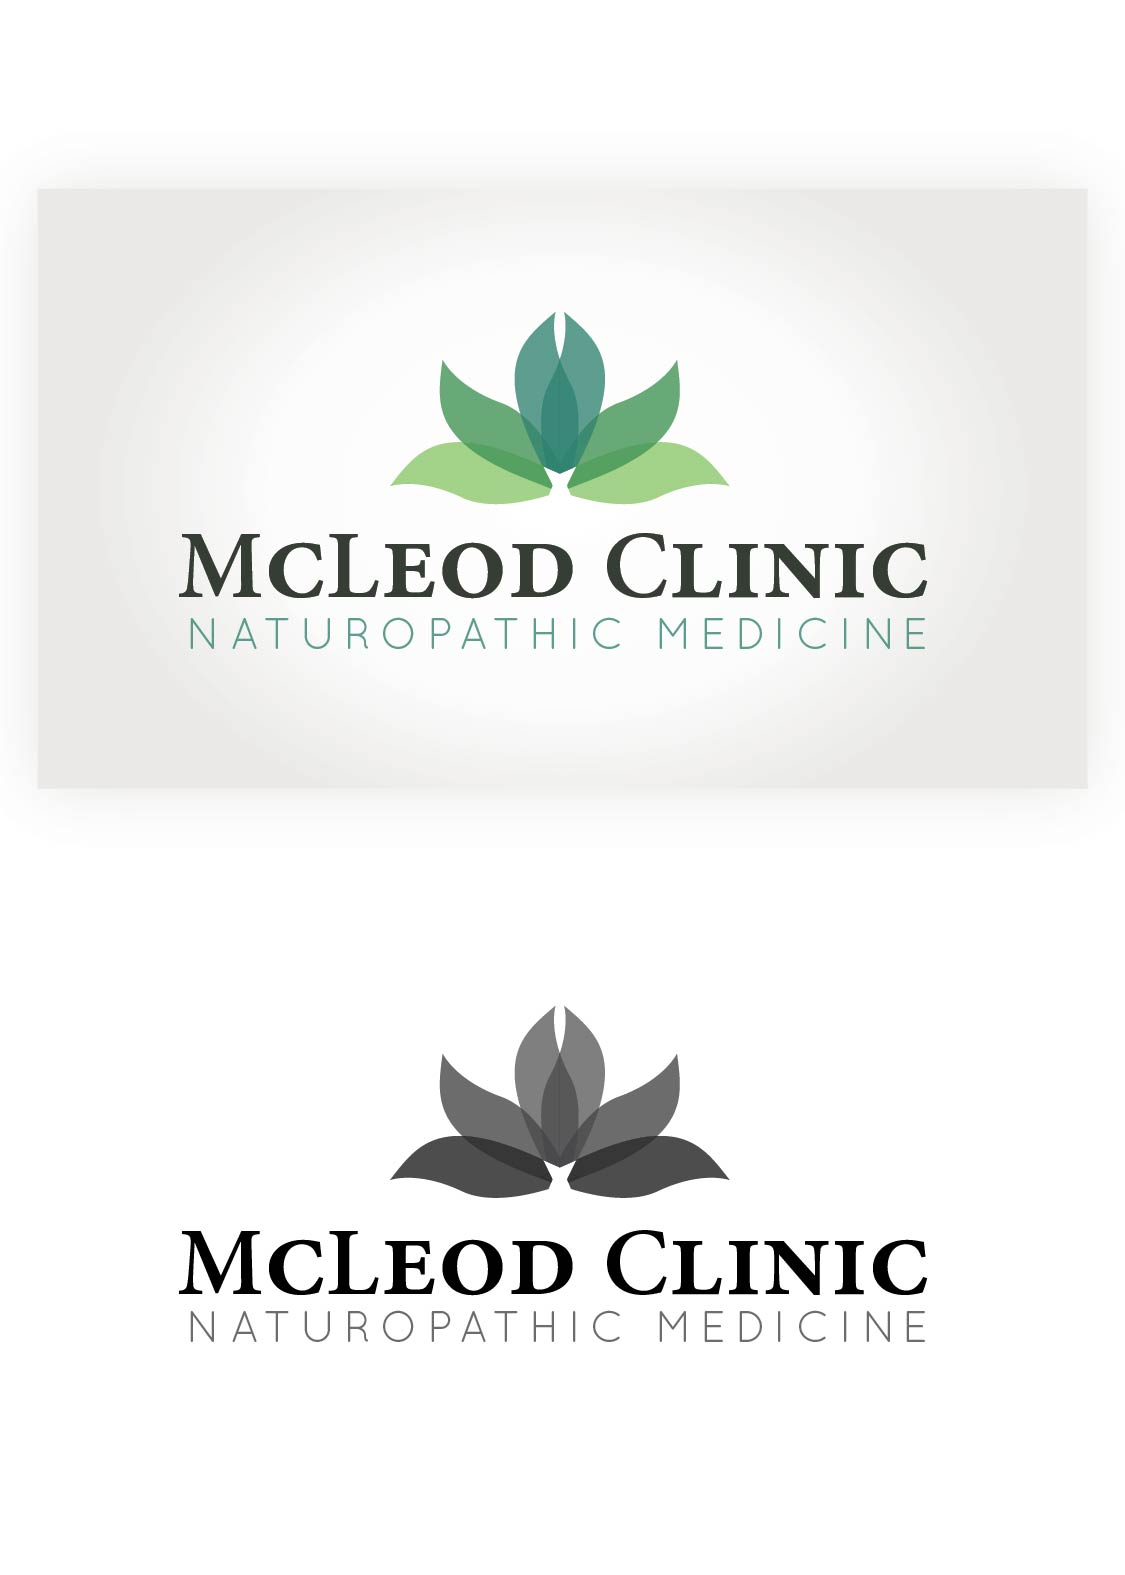 Logo Design by Gnnosch - Entry No. 111 in the Logo Design Contest Creative Logo Design for McLeod Clinic.